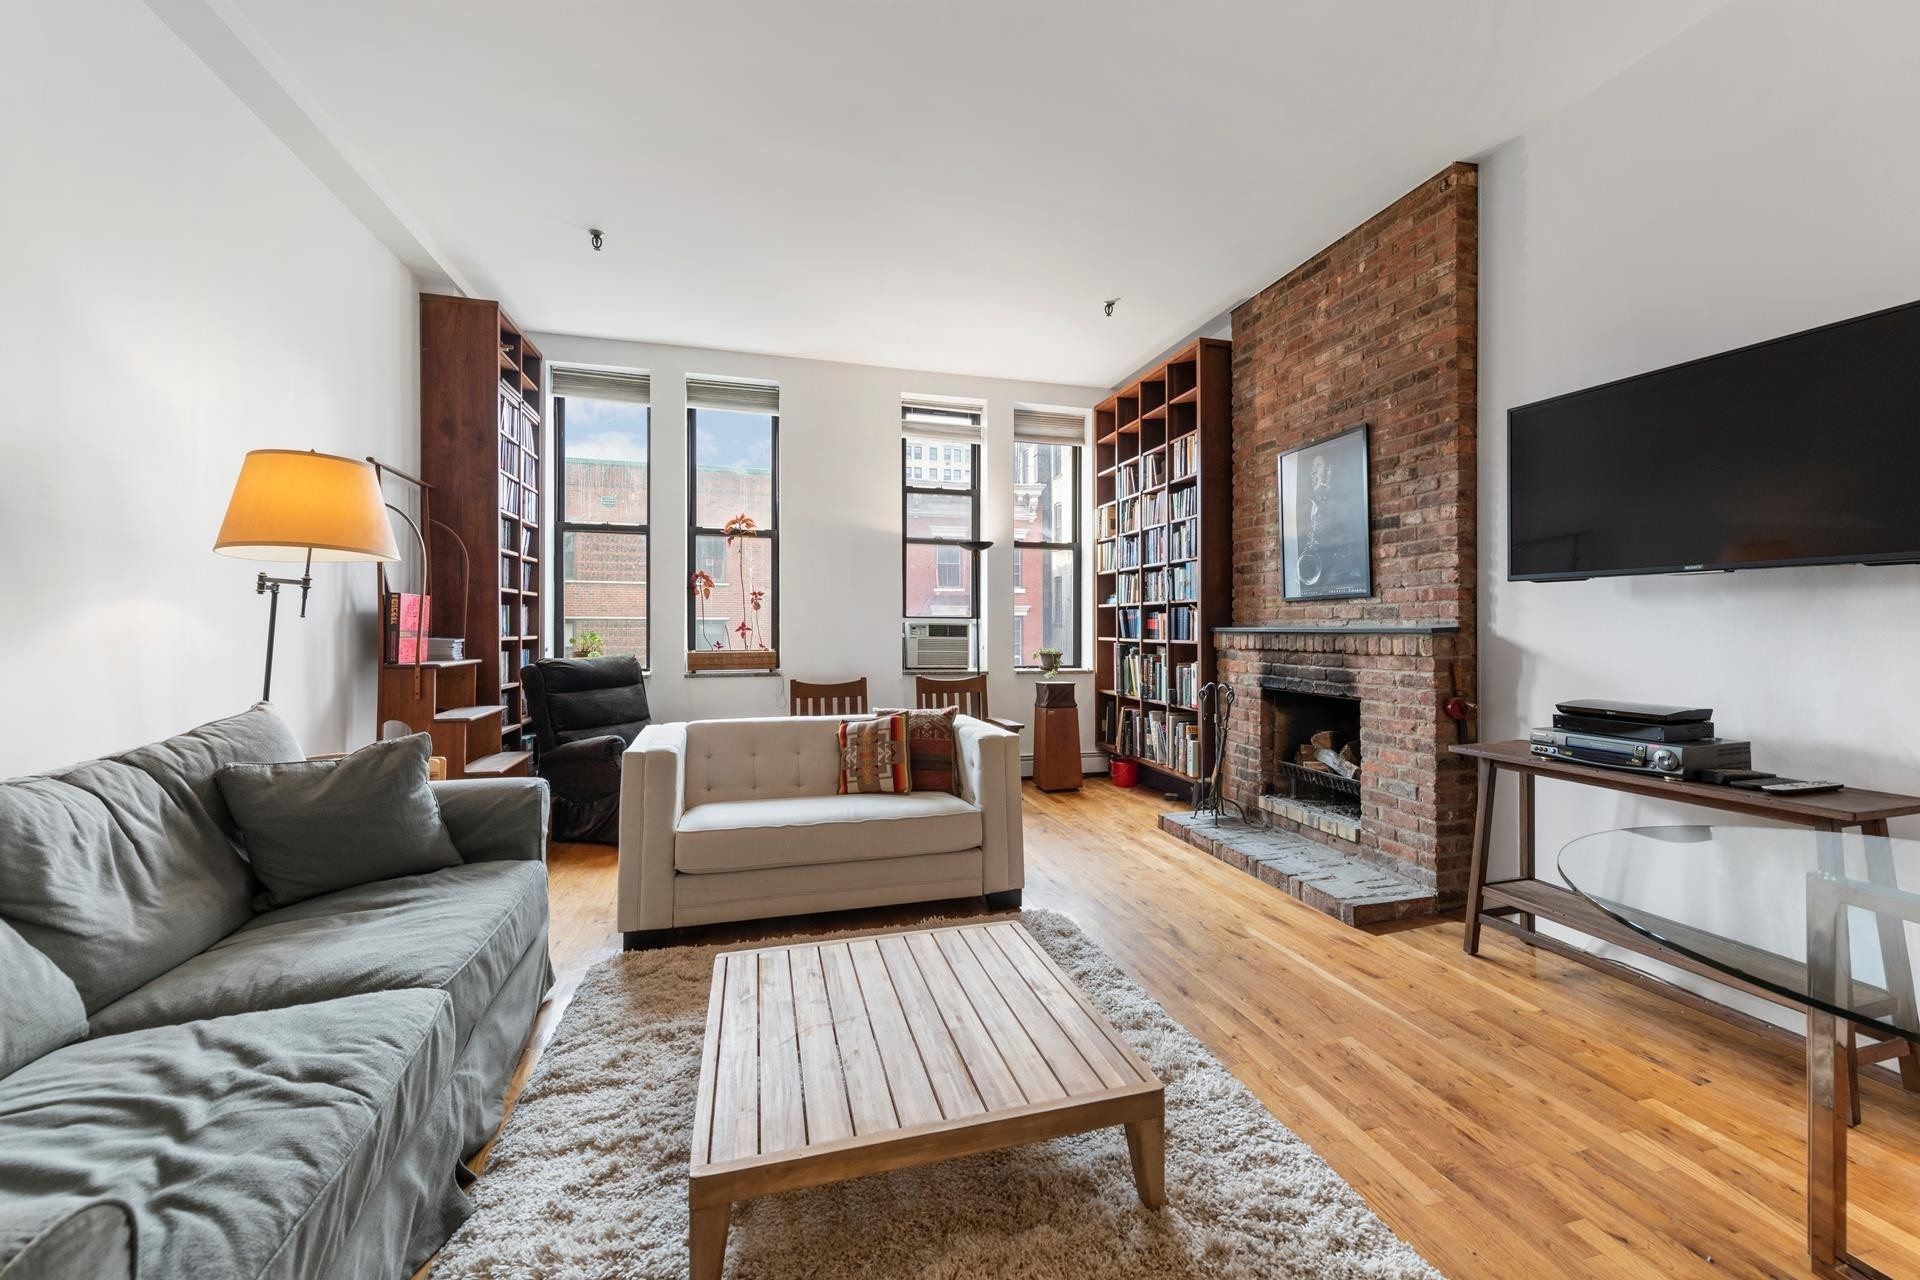 Co-op Properties for Sale at 307 East 12th St, 3B East Village, New York, NY 10003